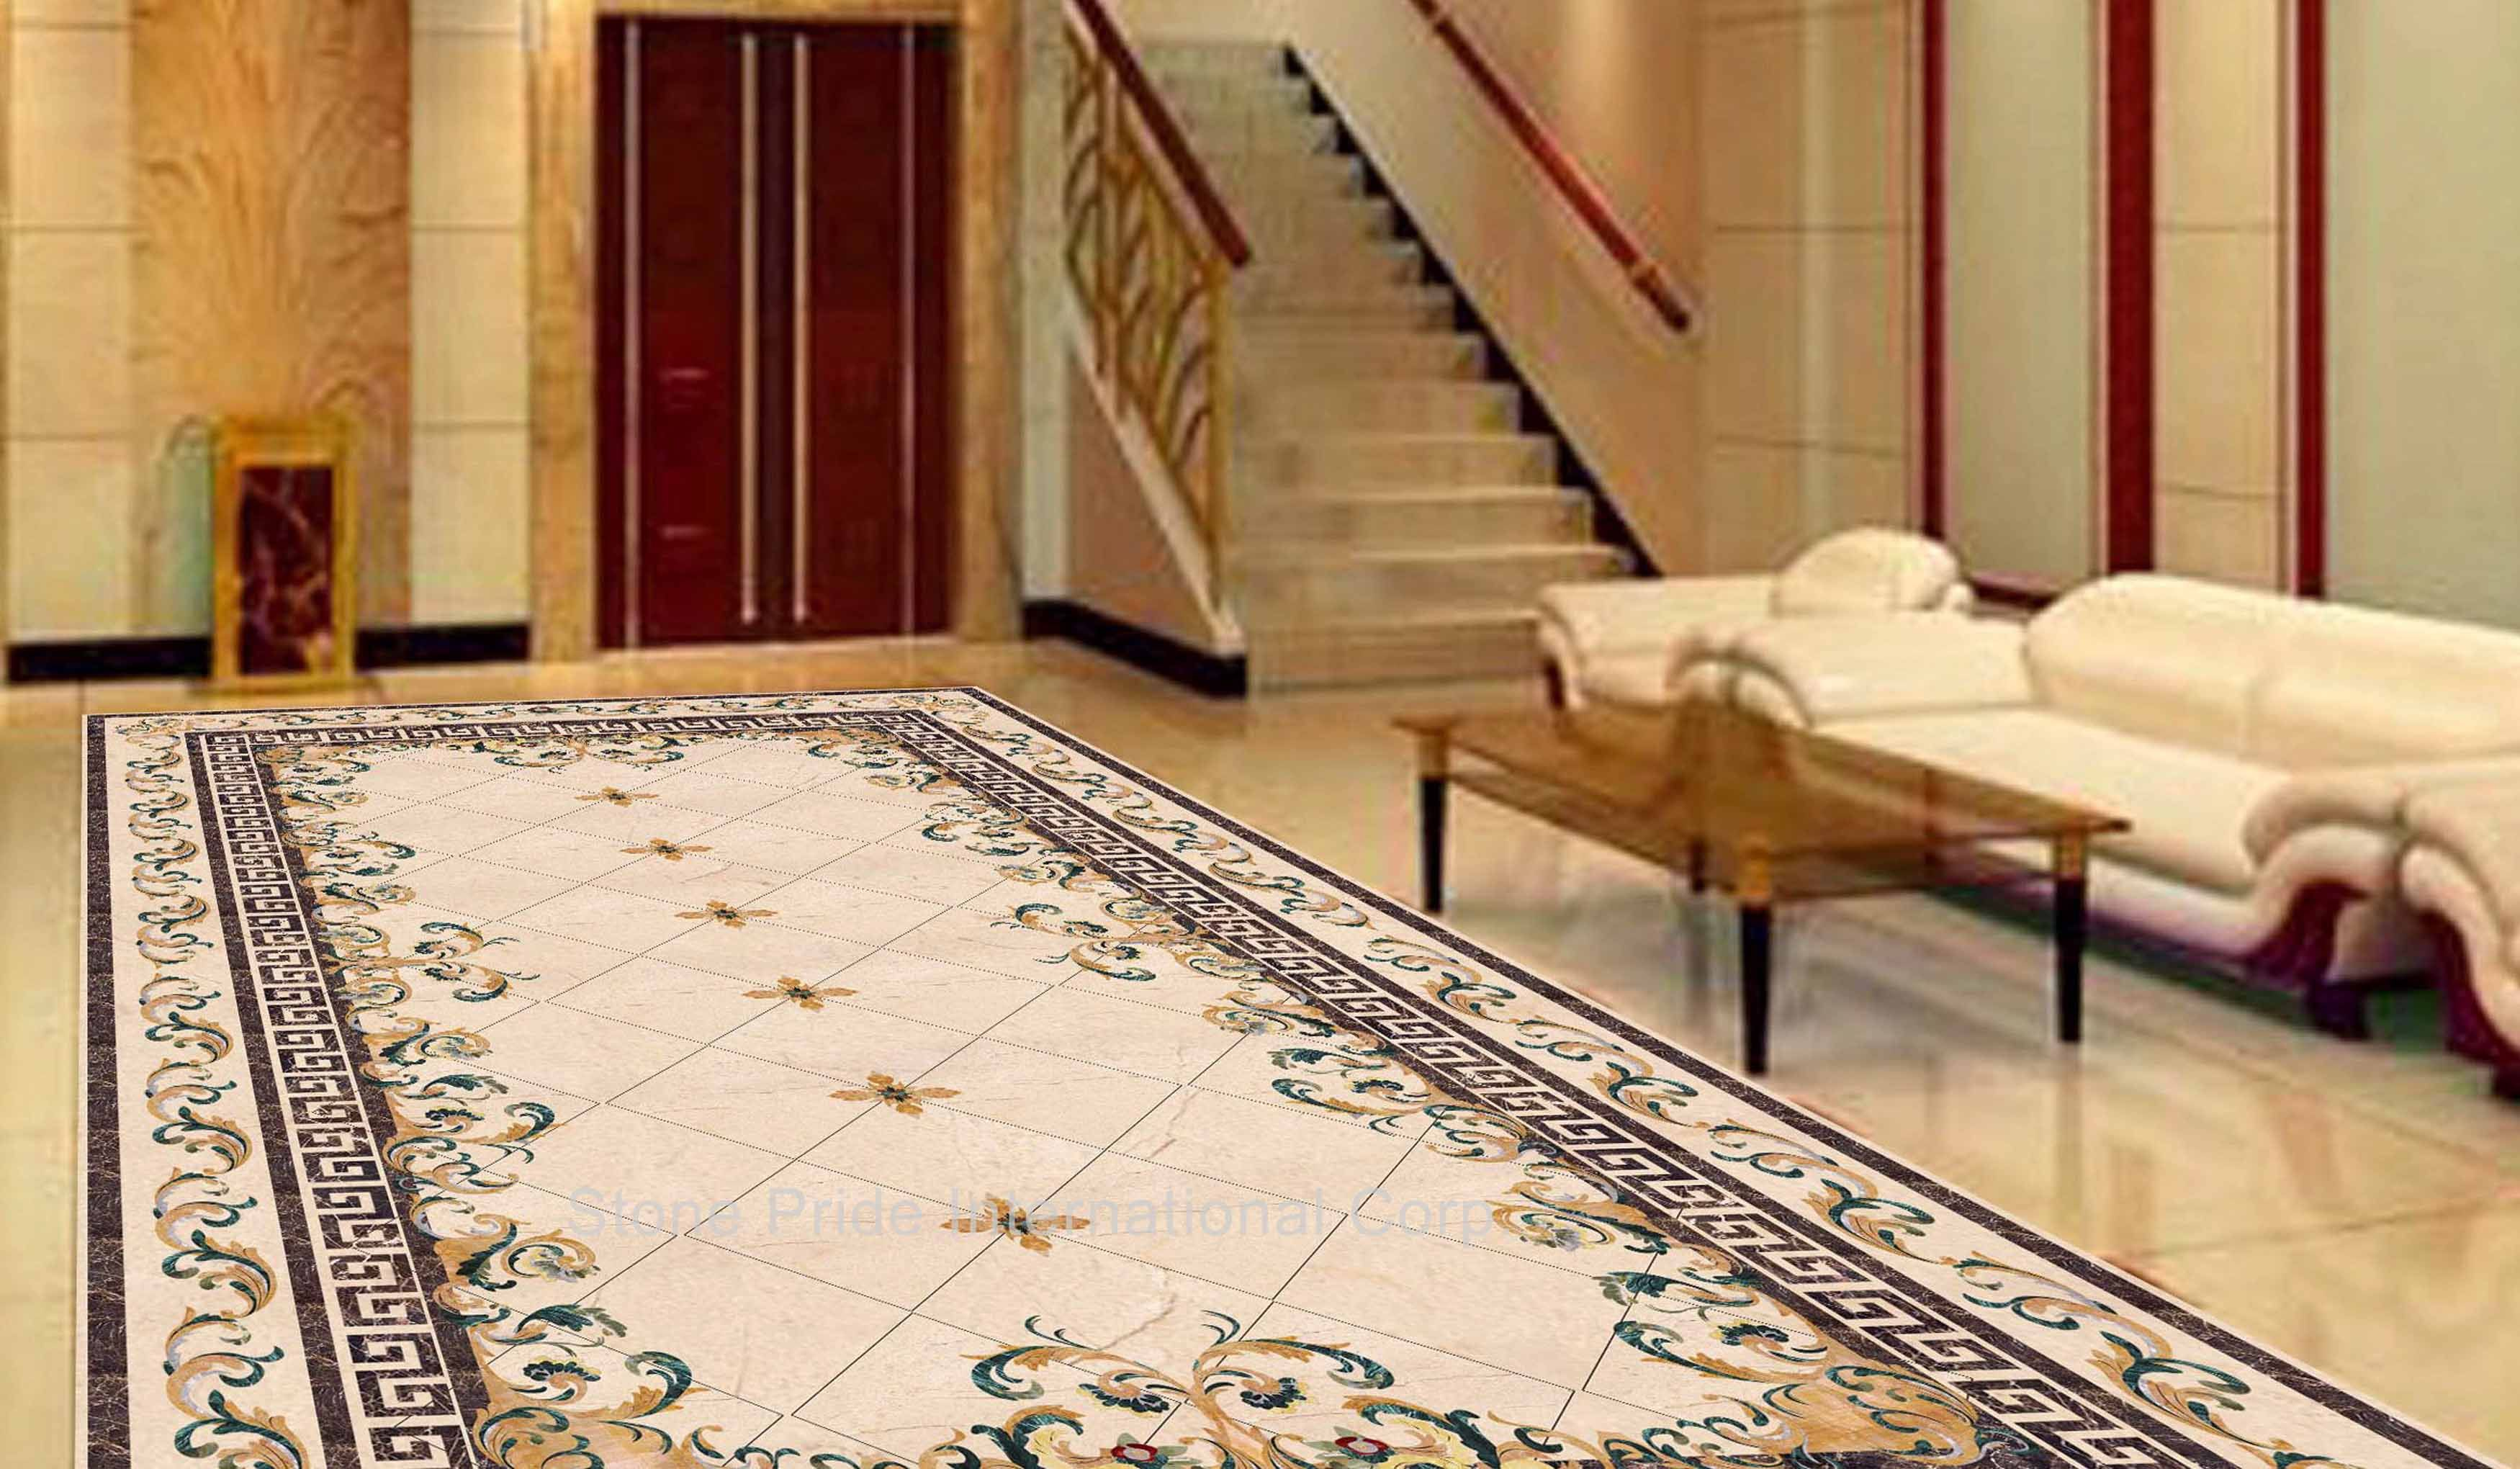 Floor Design Floor Design Floor Design Ideas Floor Design Pinterest Design Design Tile